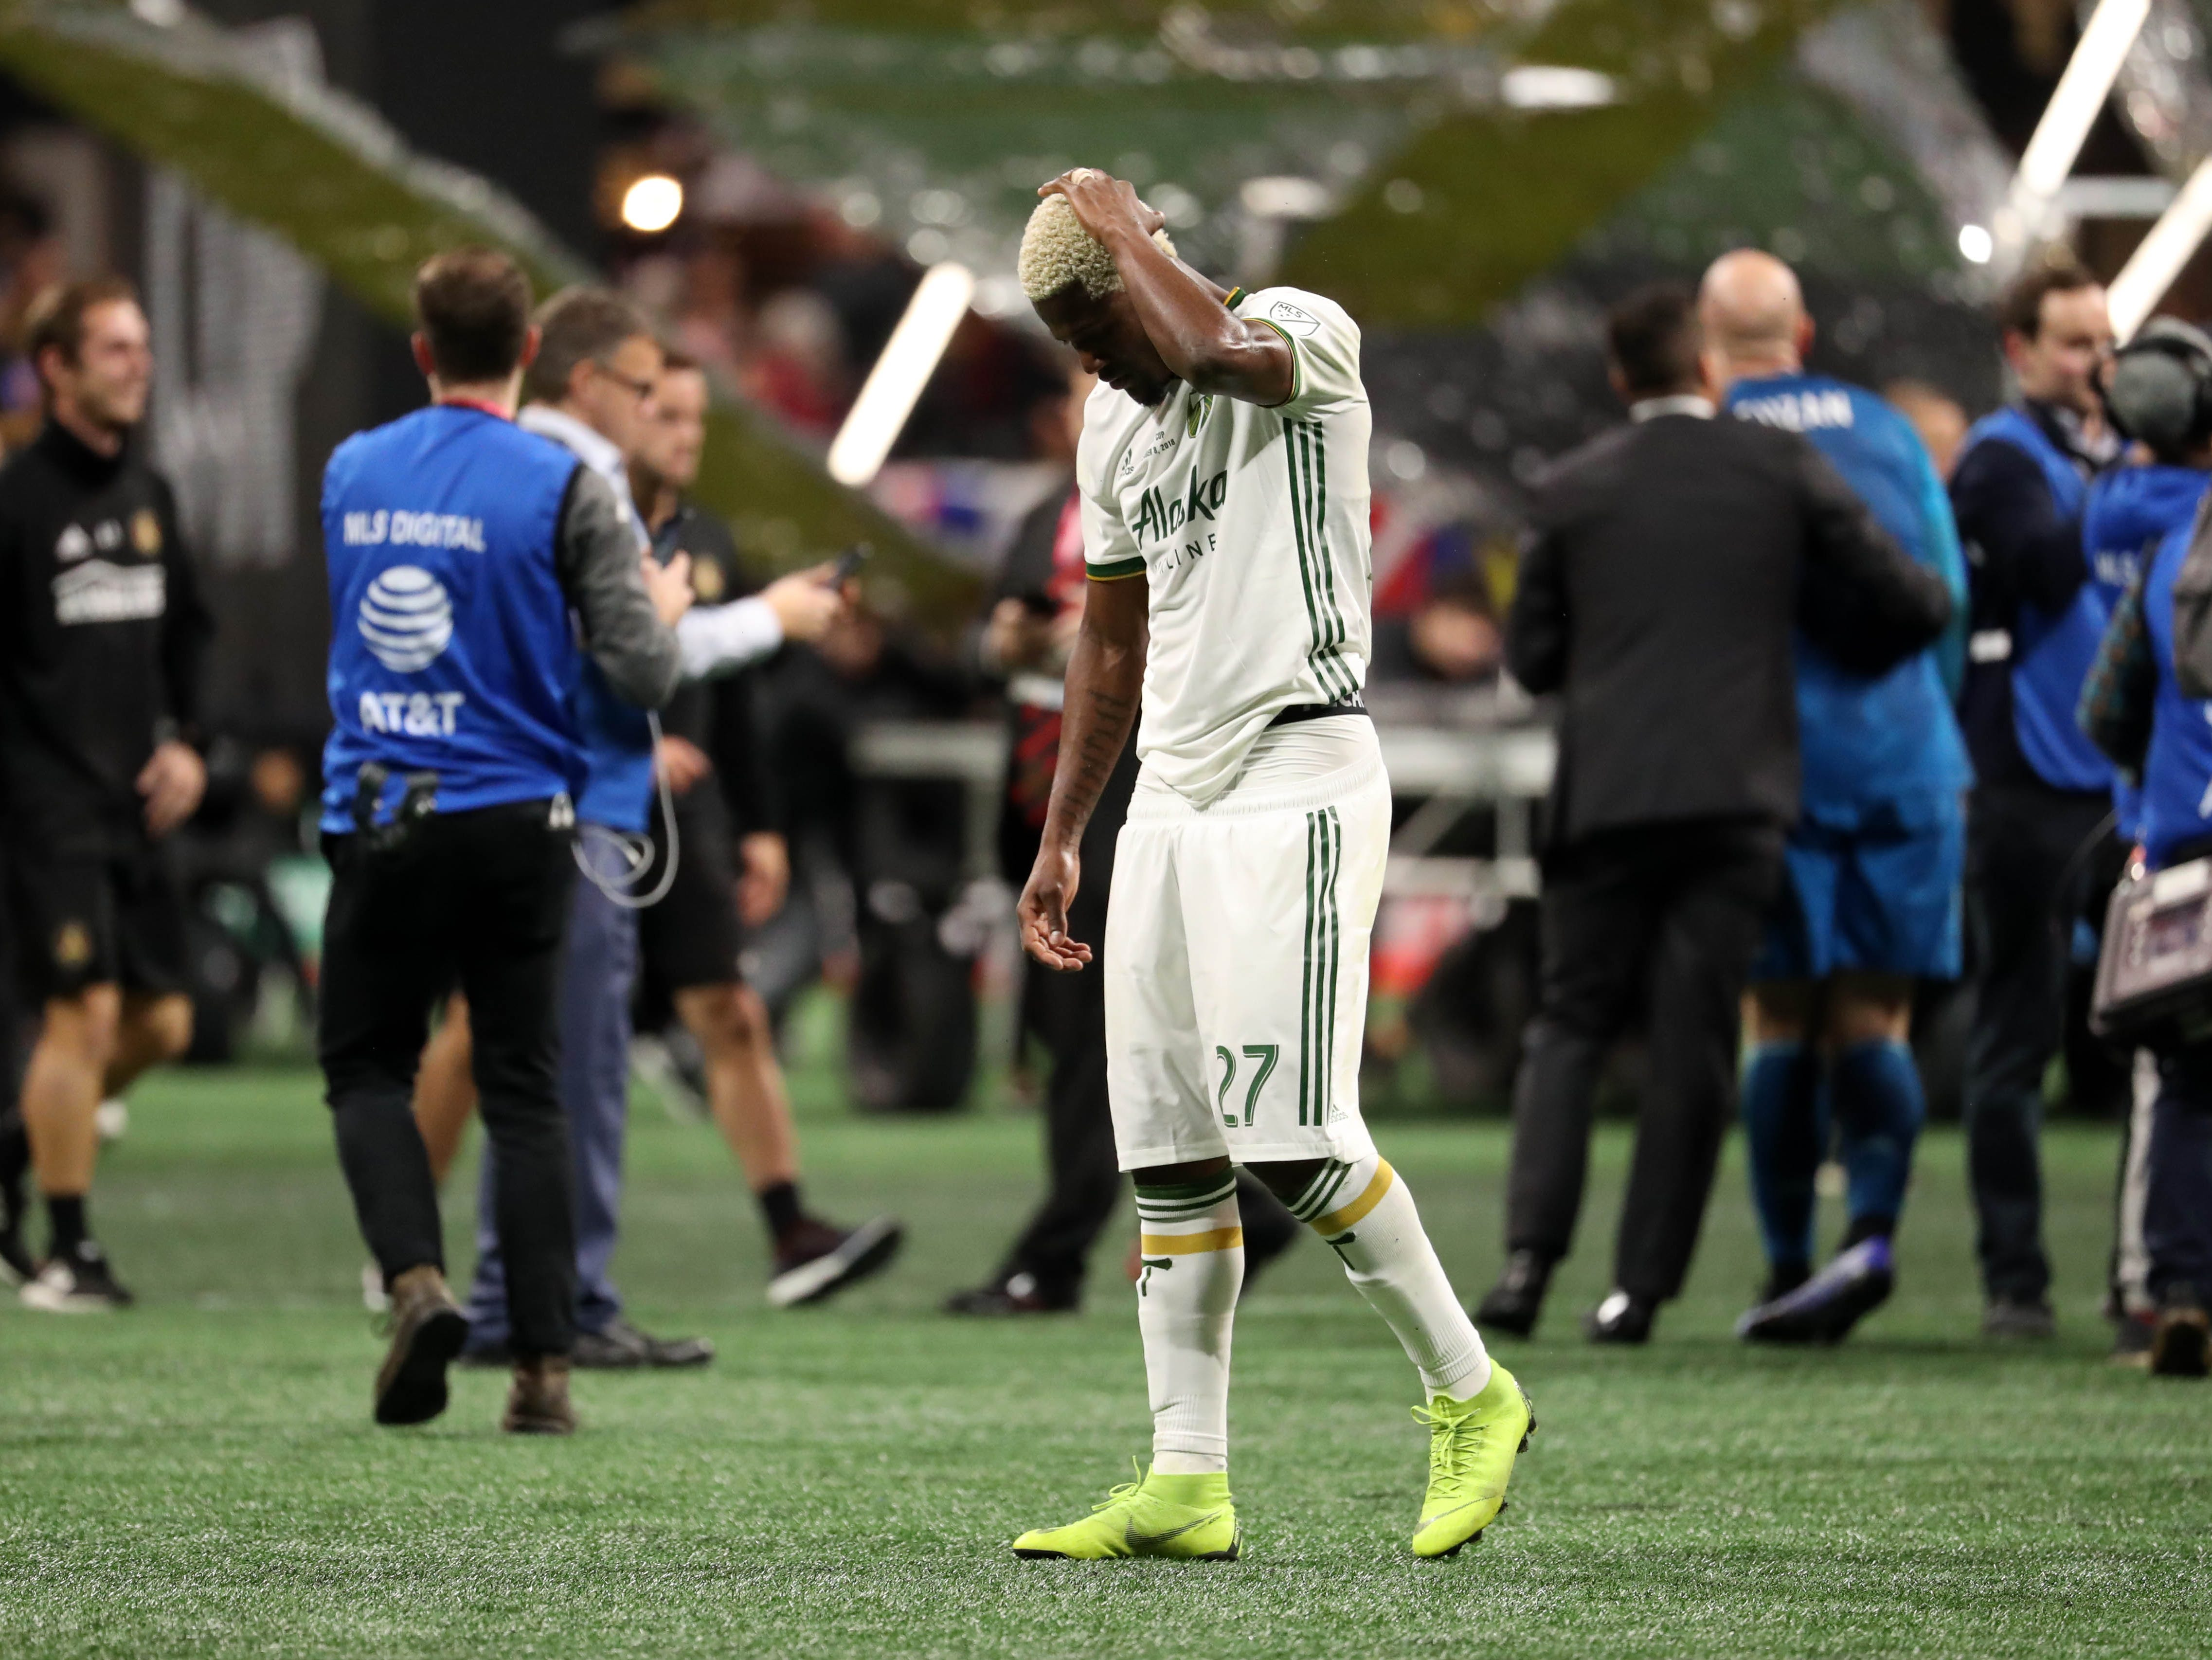 Portland Timbers forward Dairon Asprilla reacts after the 2-0 loss to the Atlanta United in the 2018 MLS Cup.